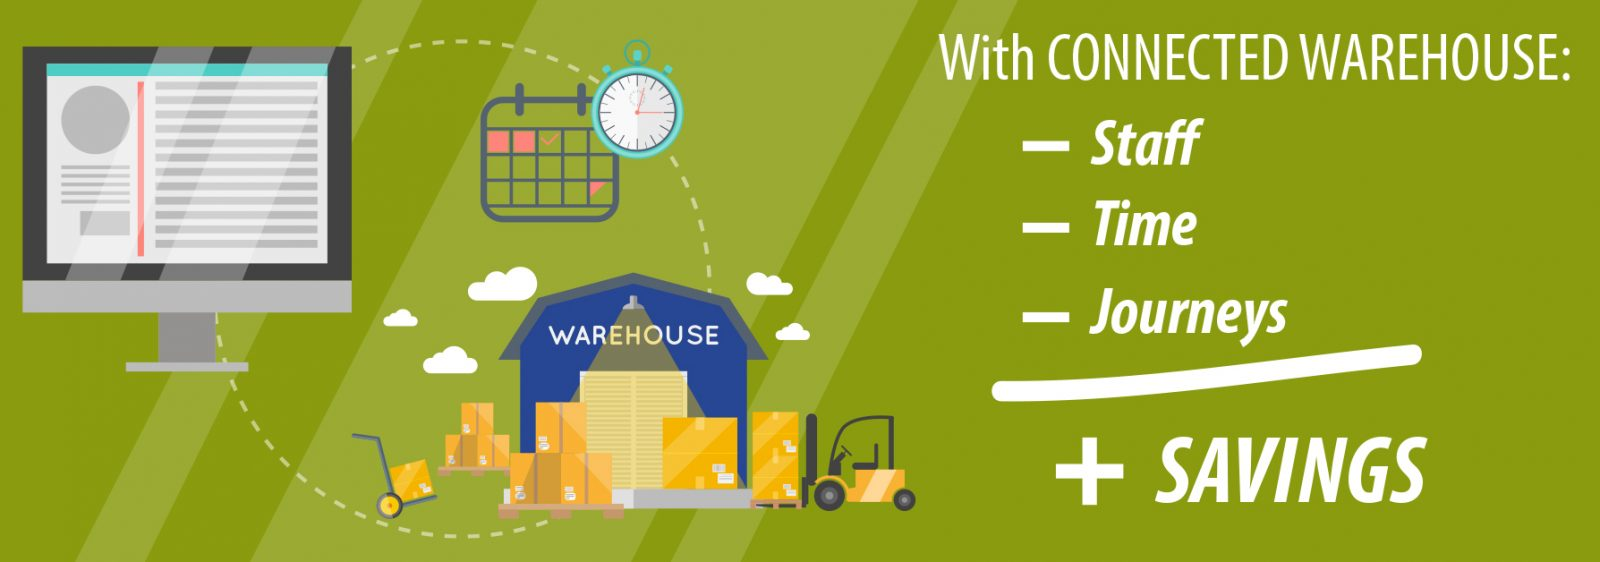 connected warehouse_savings